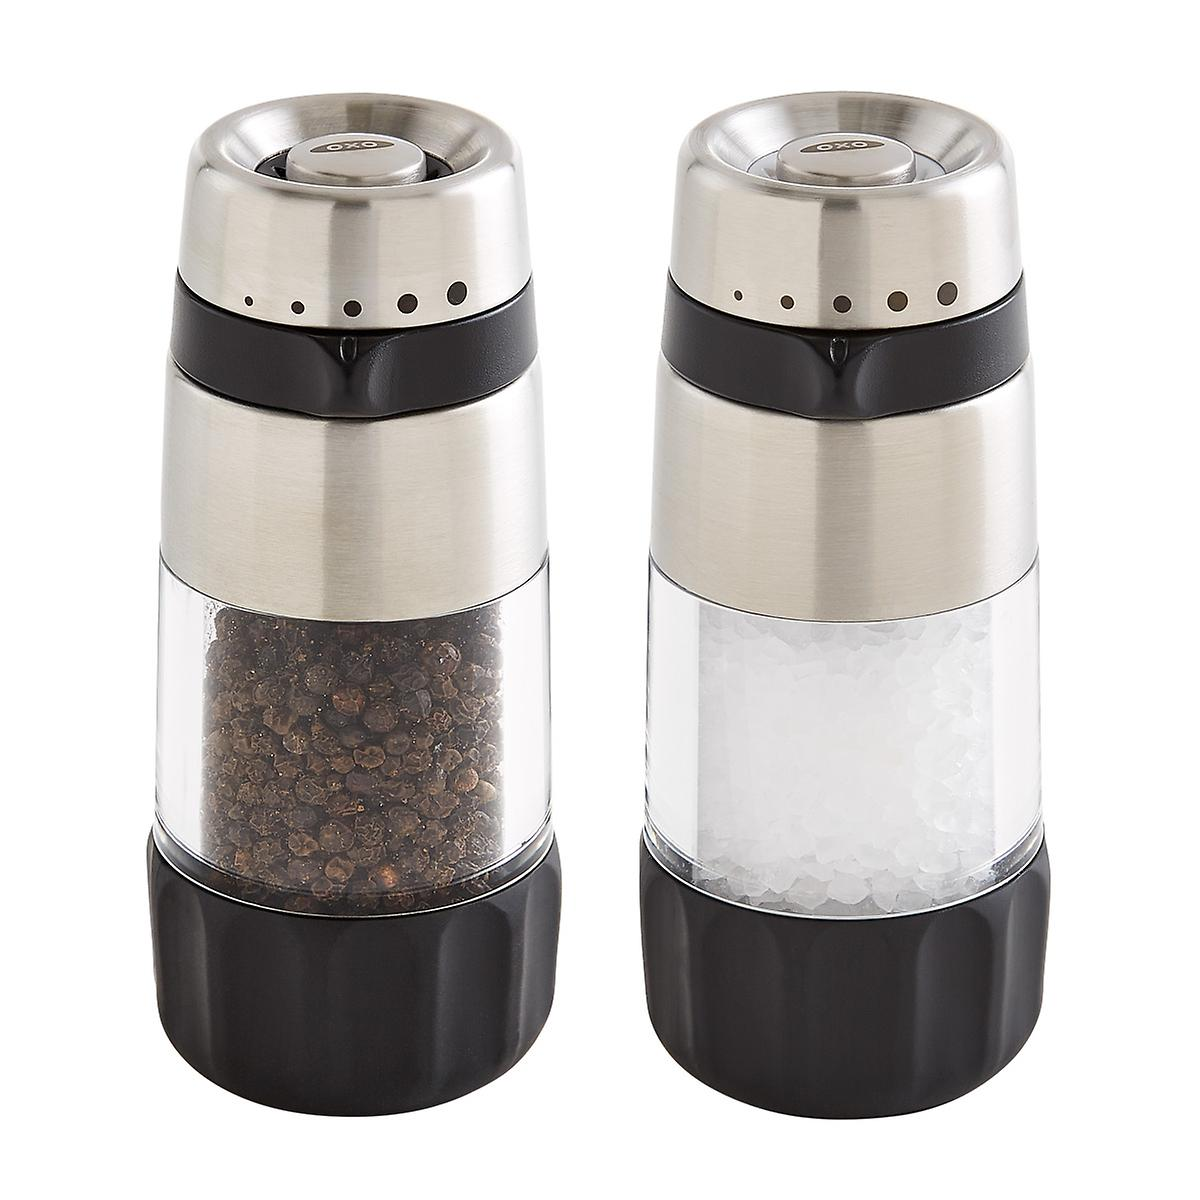 OXO Good Grips Salt & Pepper Grinders